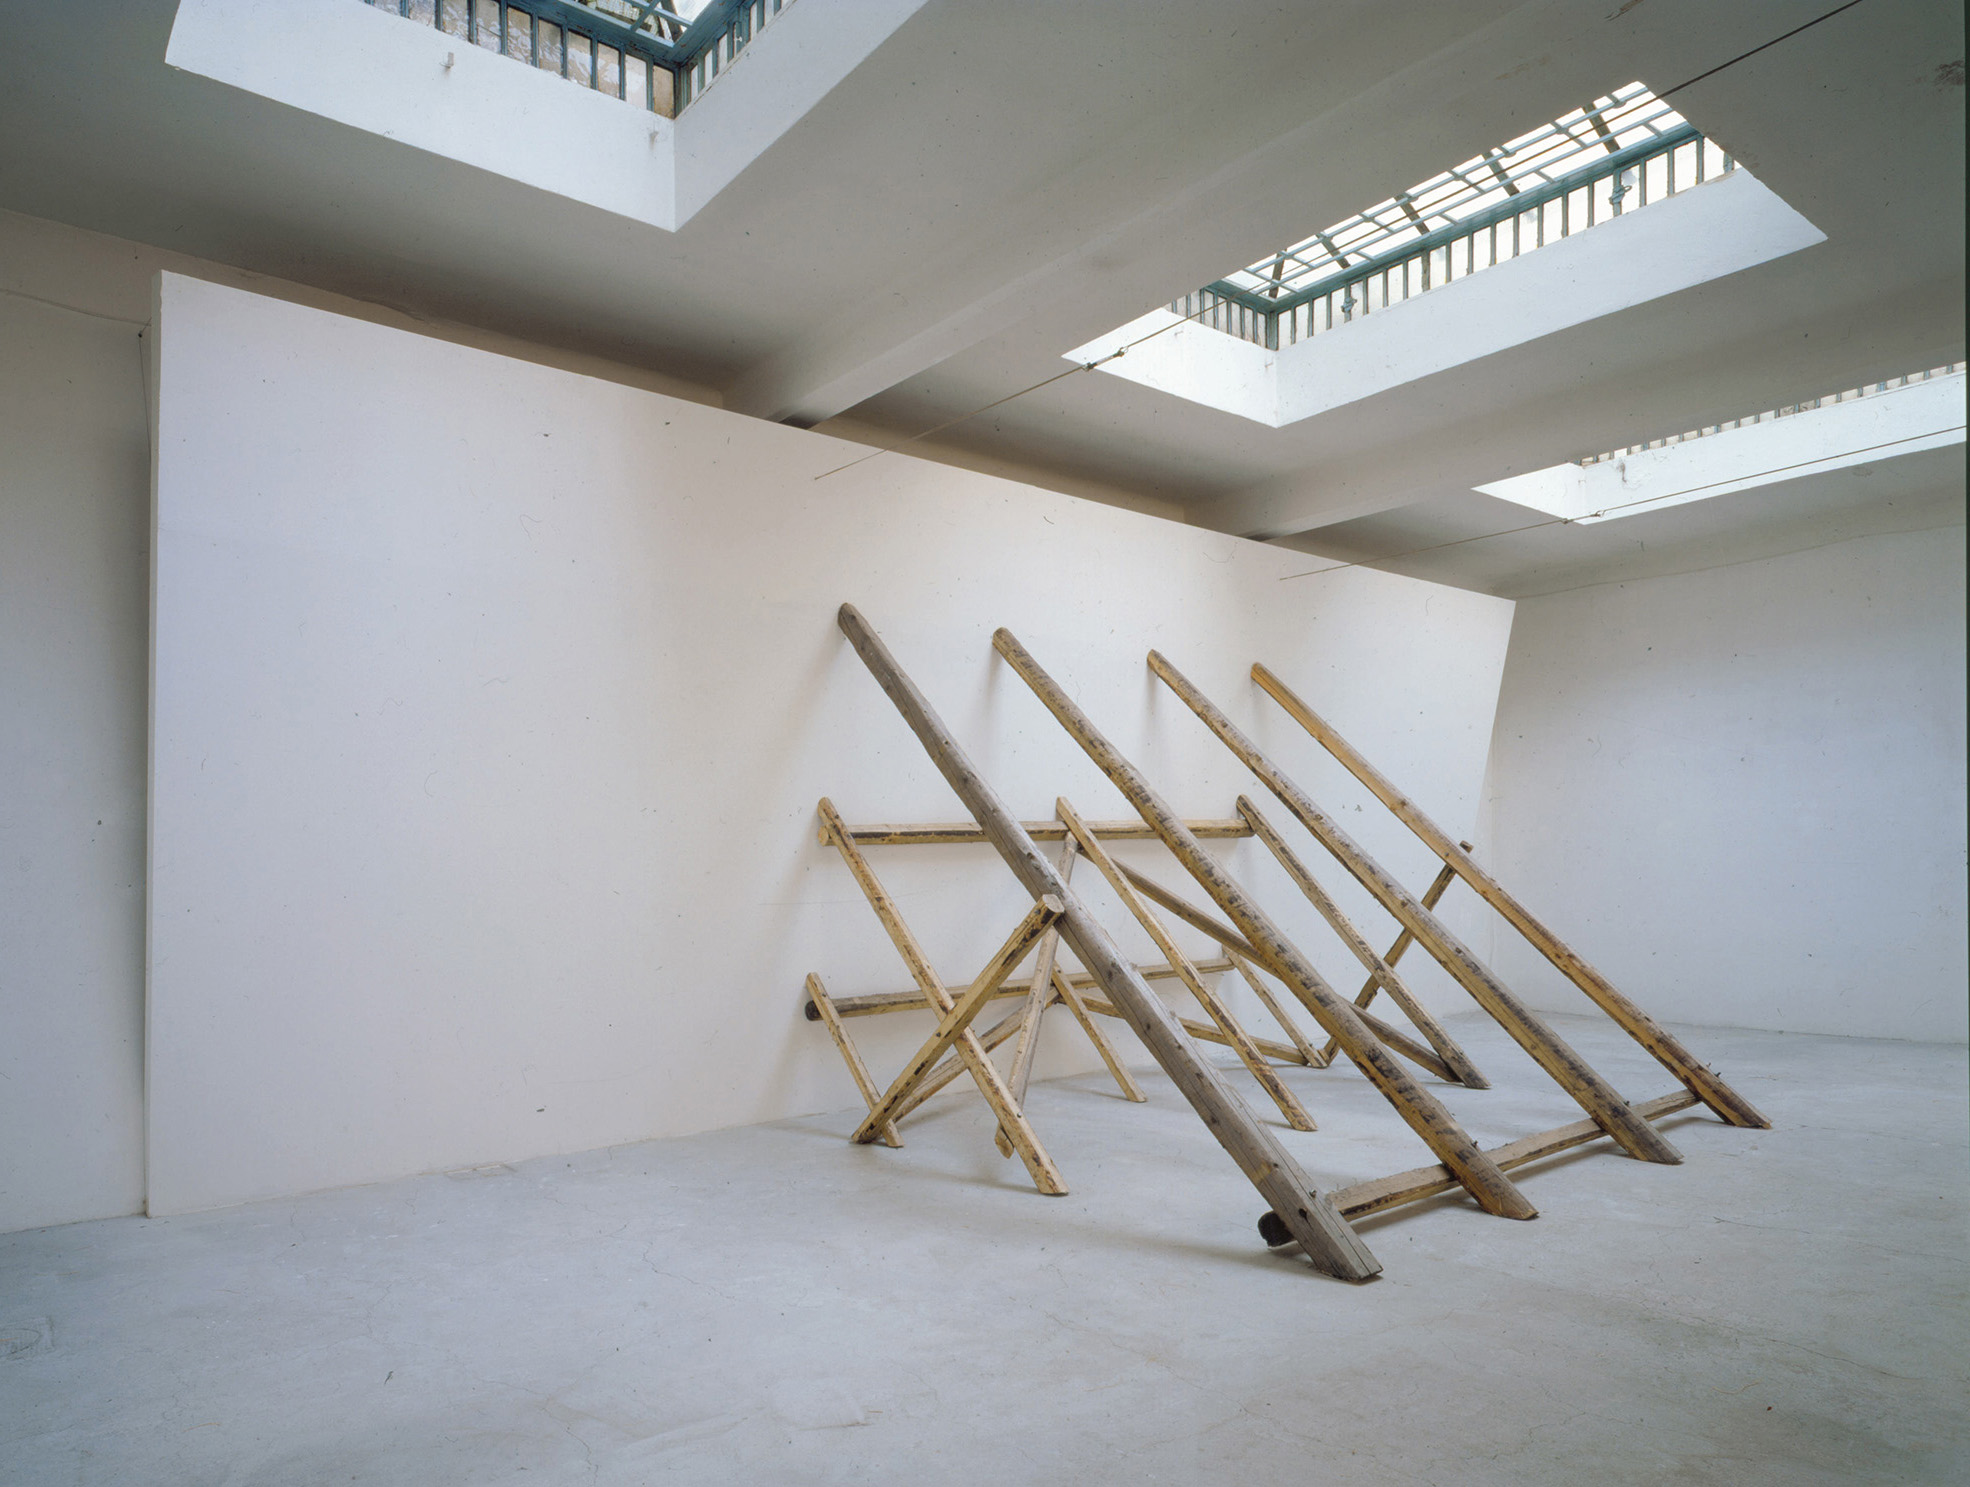 David Lamelas, <i>Untitled (Falling Wall)</i>, 1993. Courtesy David Lamelas and Maccarone New York/Los Angeles.